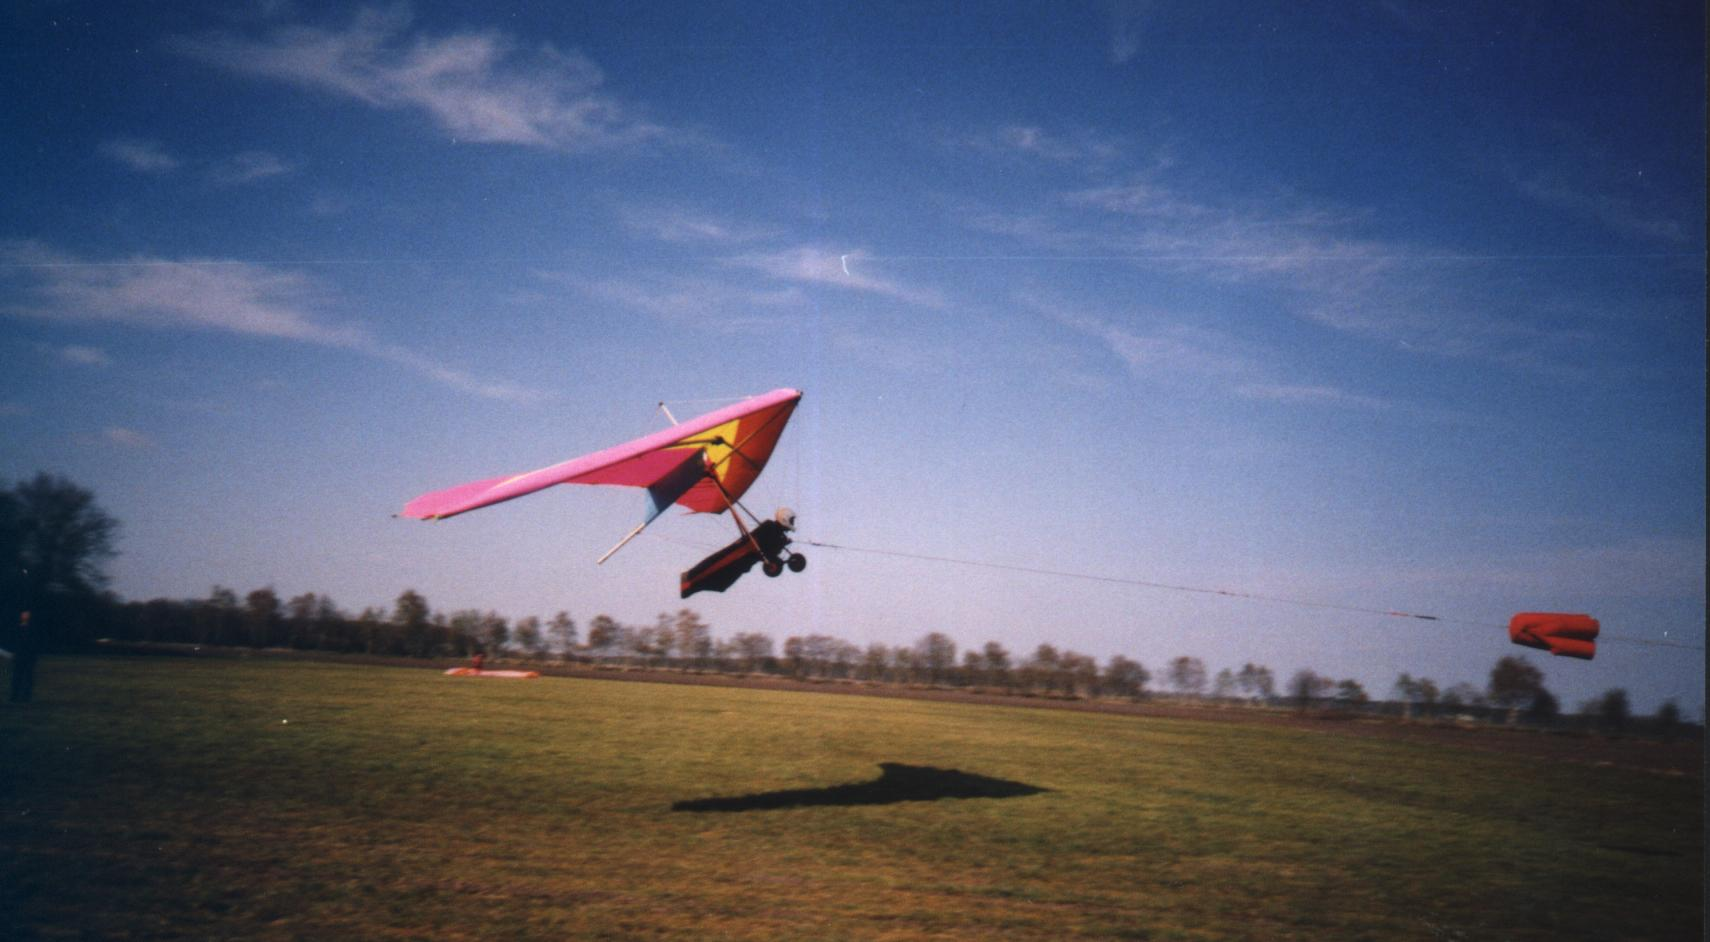 kevin launching